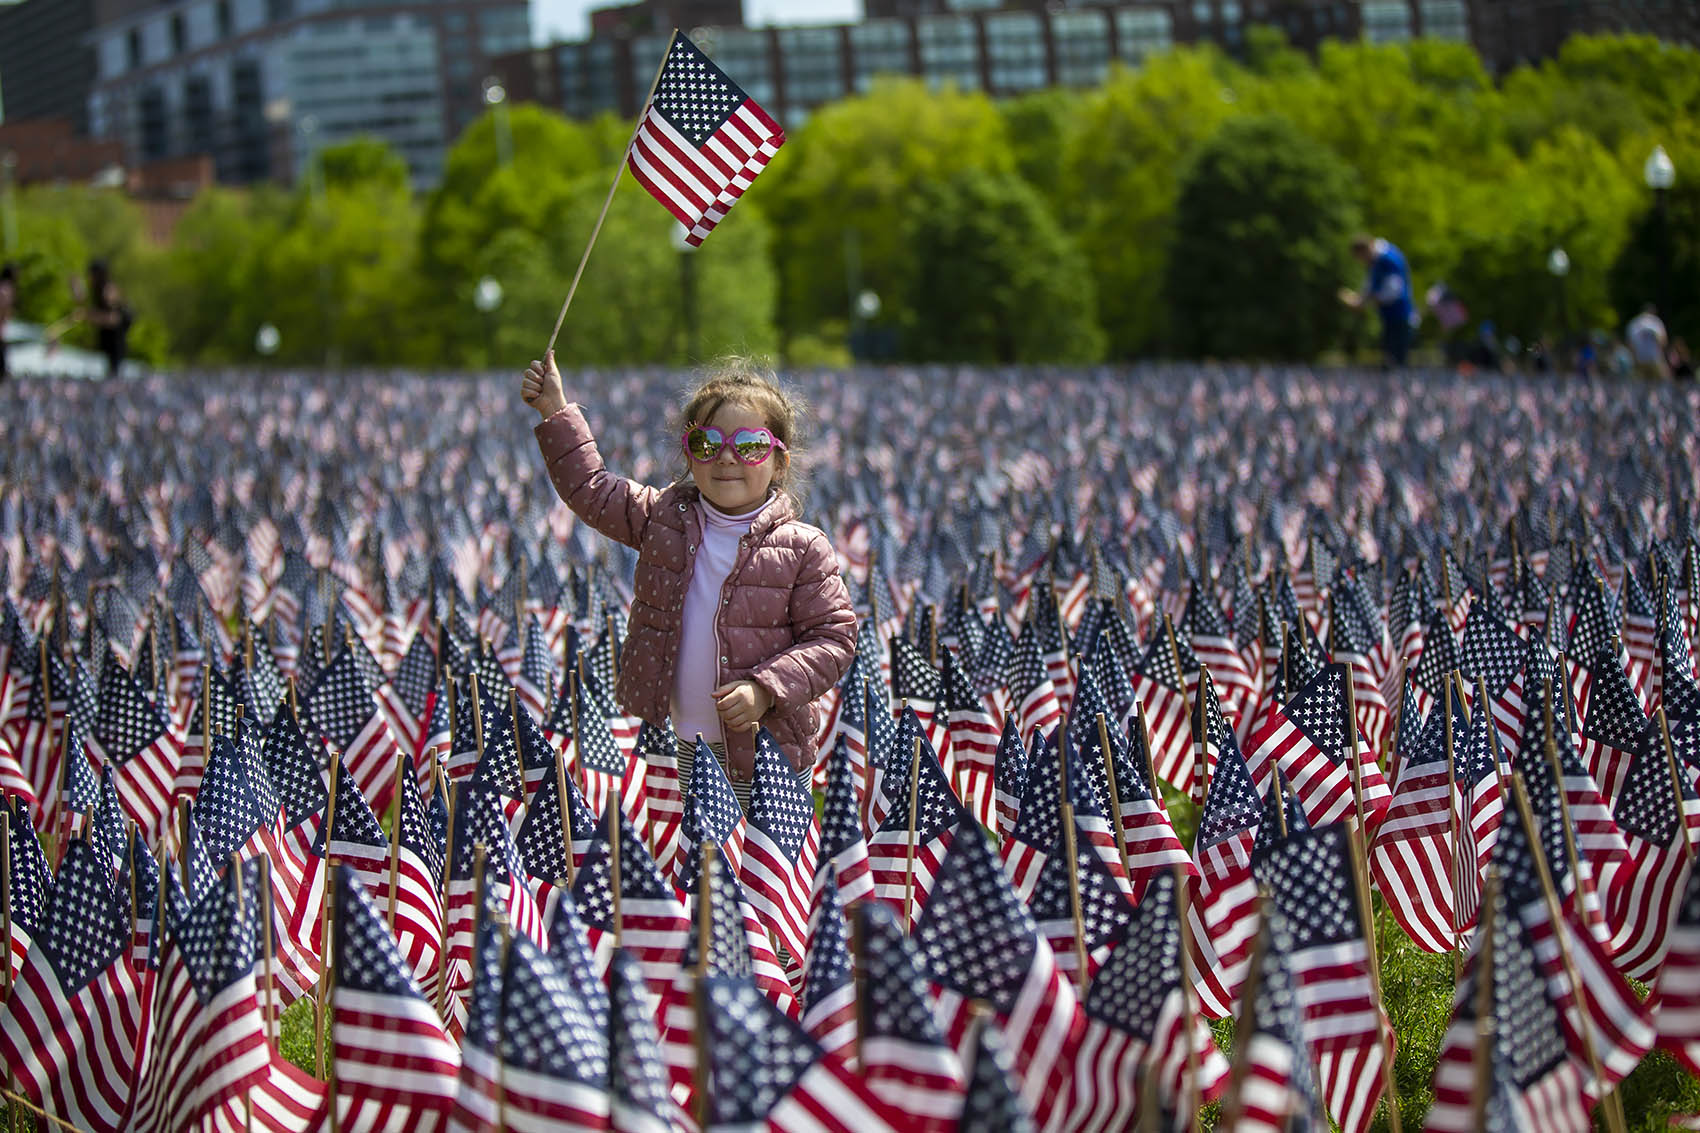 Three-and-a-half-year-old Veronica Ianivska holds up an American flag as her mother takes a picture of her in the sea of flags in Boston Common during the Massachusetts Military Heroes flag planting event Wednesday. (Jesse Costa/WBUR)